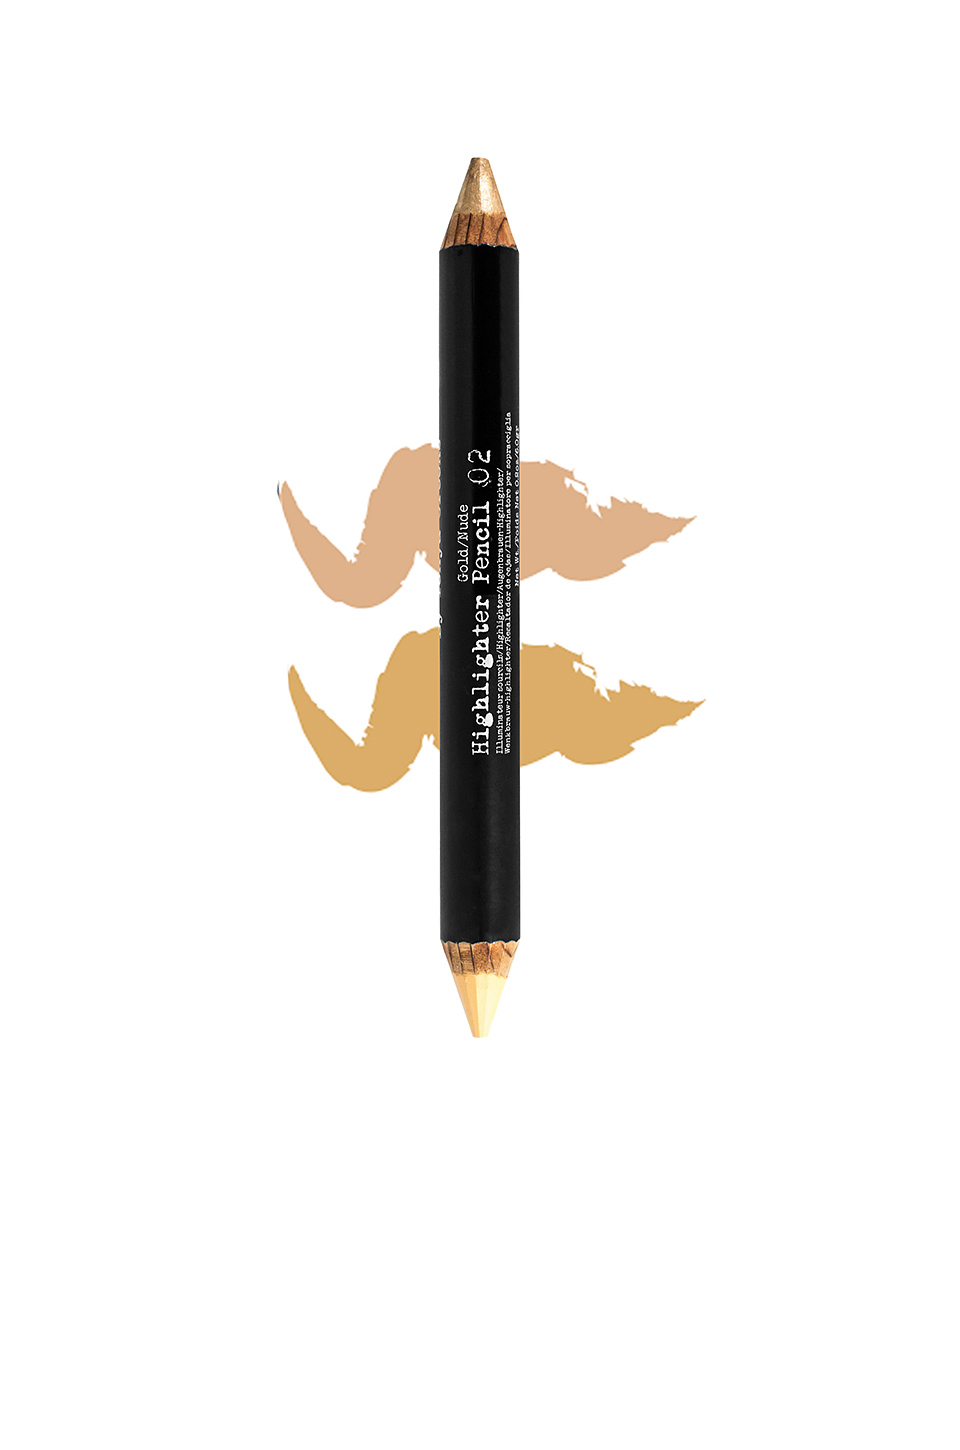 The Browgal Highlighter Pencil in Nude & Gold